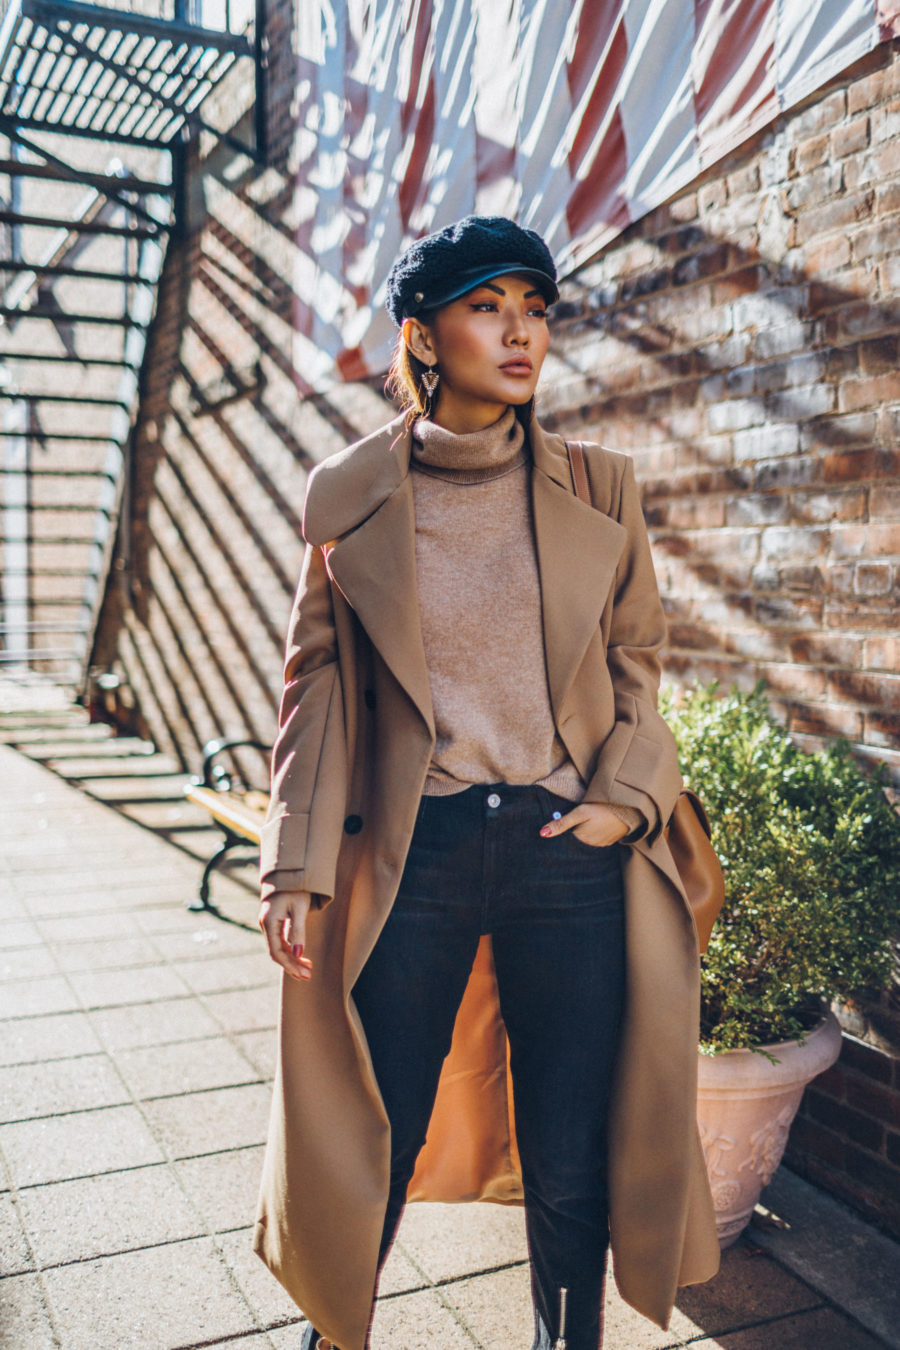 How to Buy an Investment Coat - Belted Camel Coat with Dark Denim Baker Boy Cap and Satchel // Notjessfashion.com